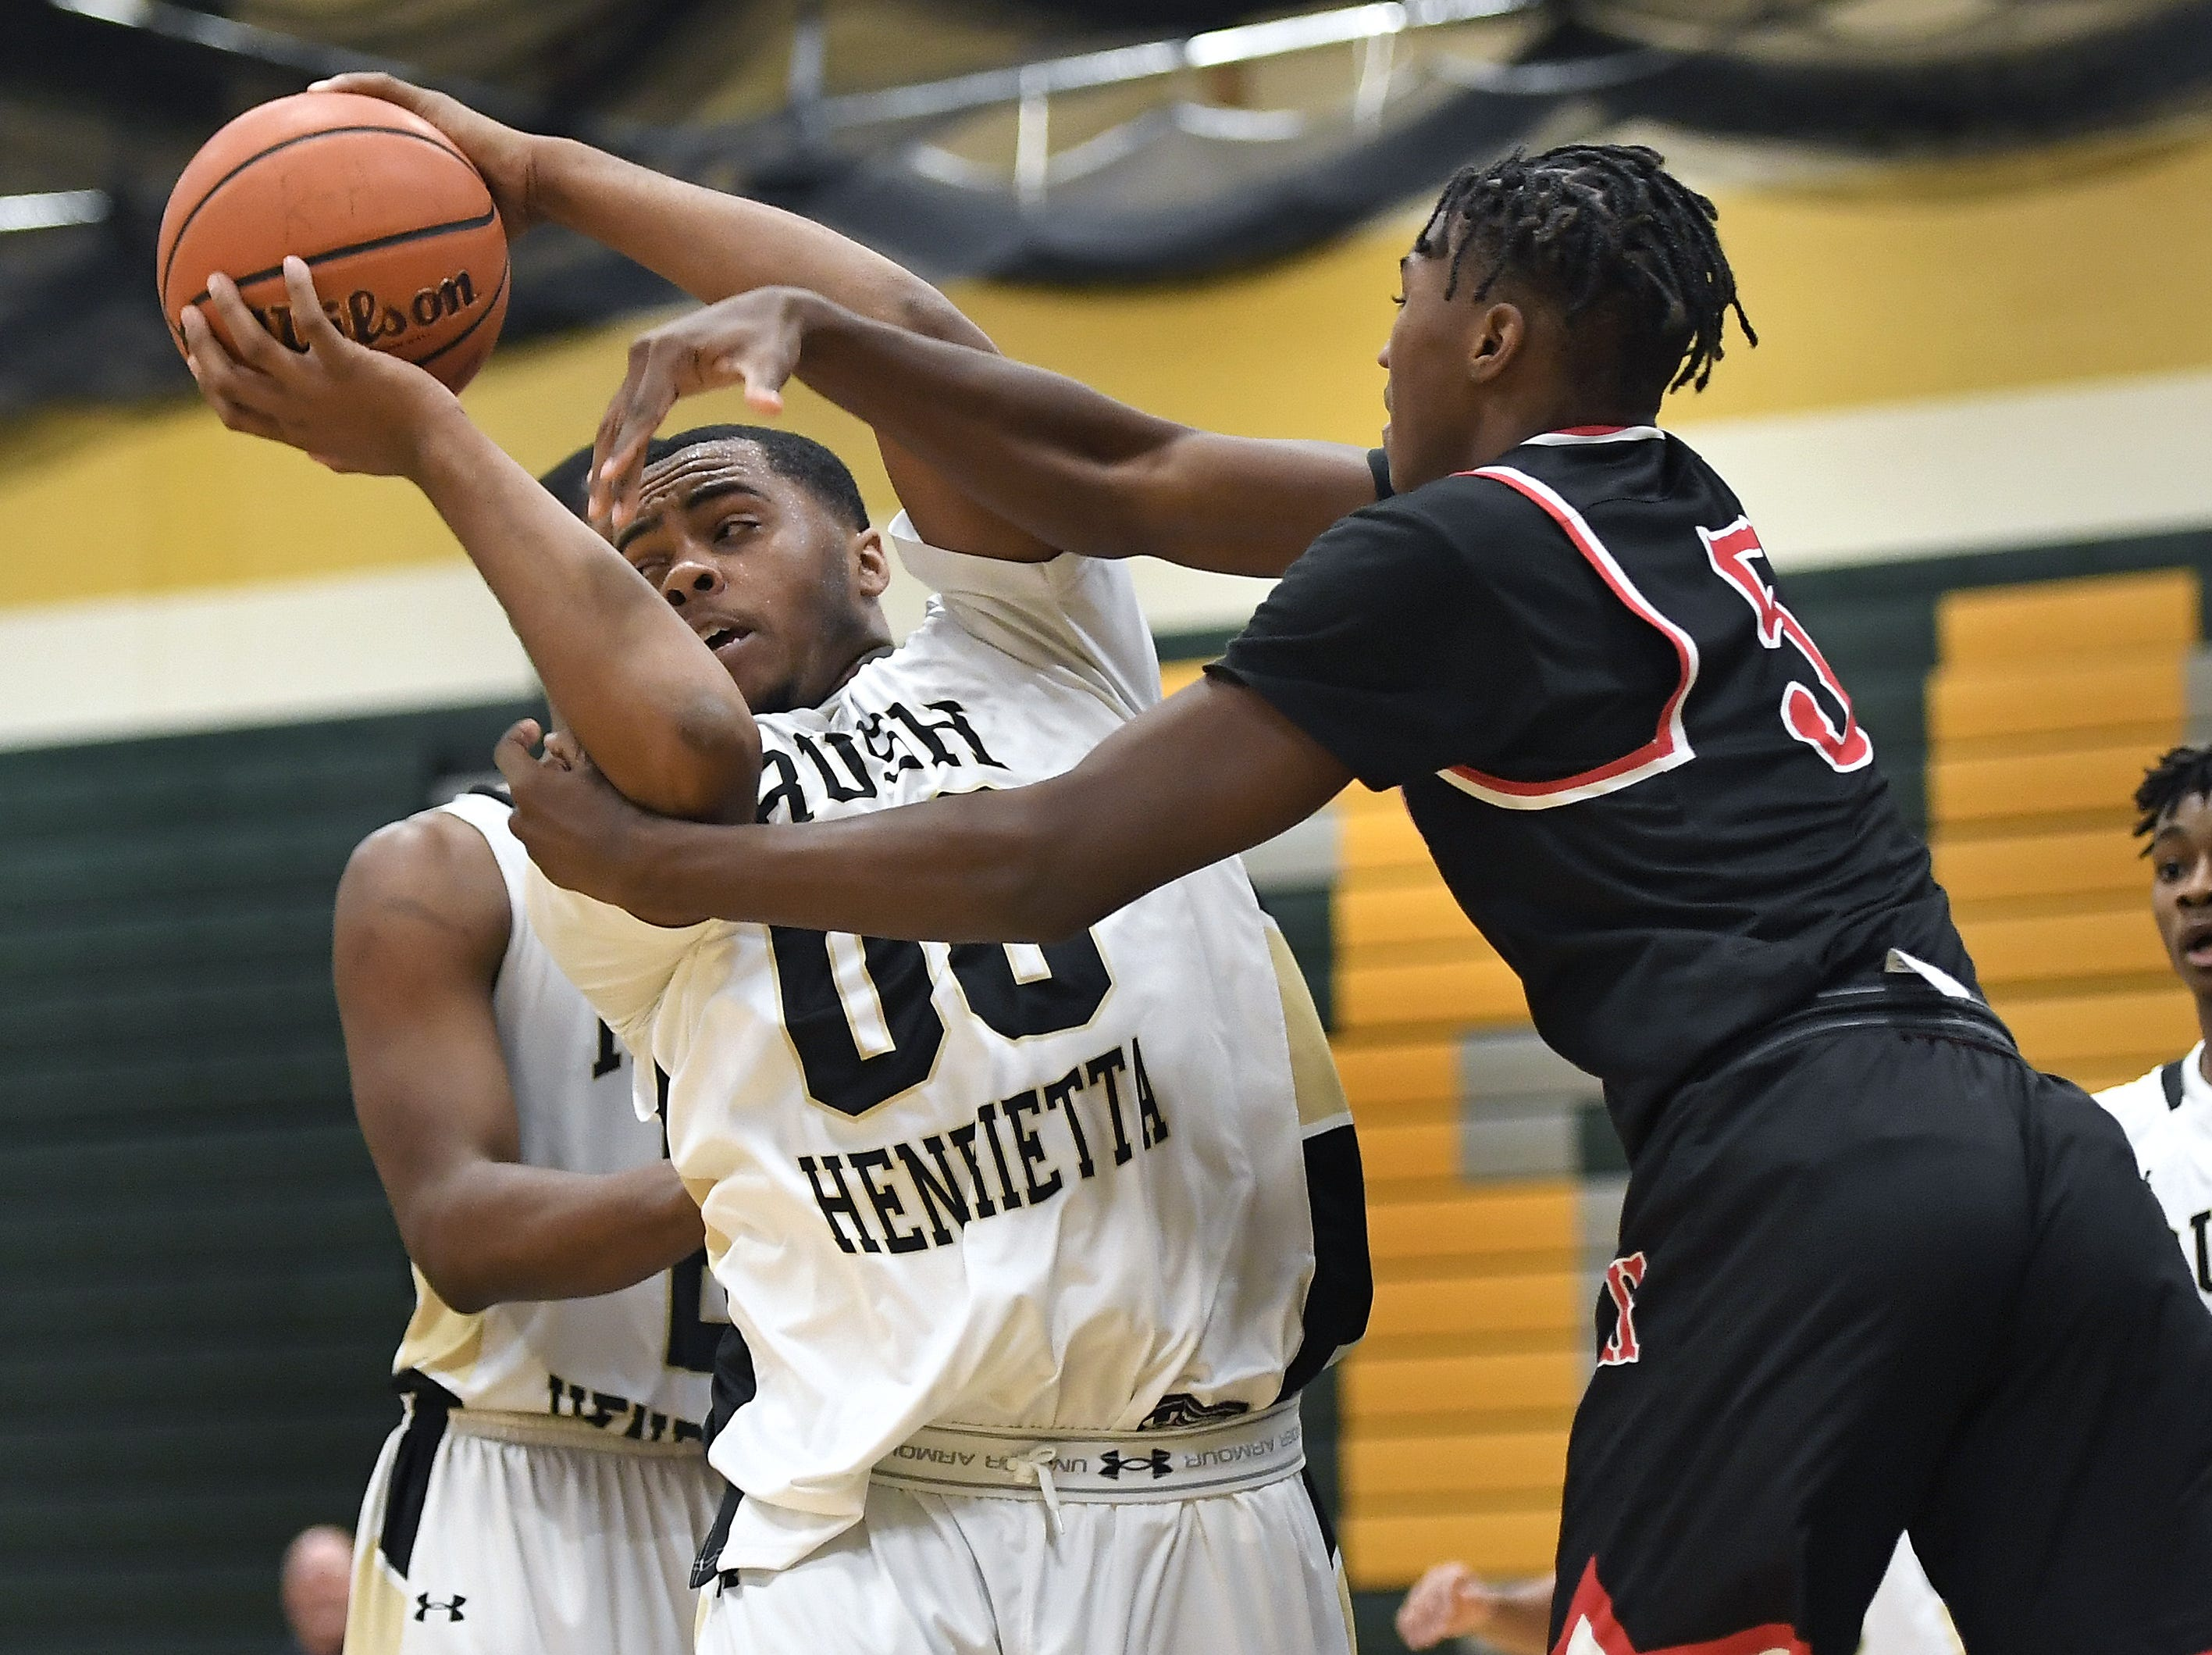 Rush-Henrietta's Nyles Goodwin, left, wins a rebound from Hilton's Najier Daniels during a regular season game played at Rush-Henrietta High School, Friday, Dec. 7, 2018. Hilton beat Rush-Henrietta 61-47.